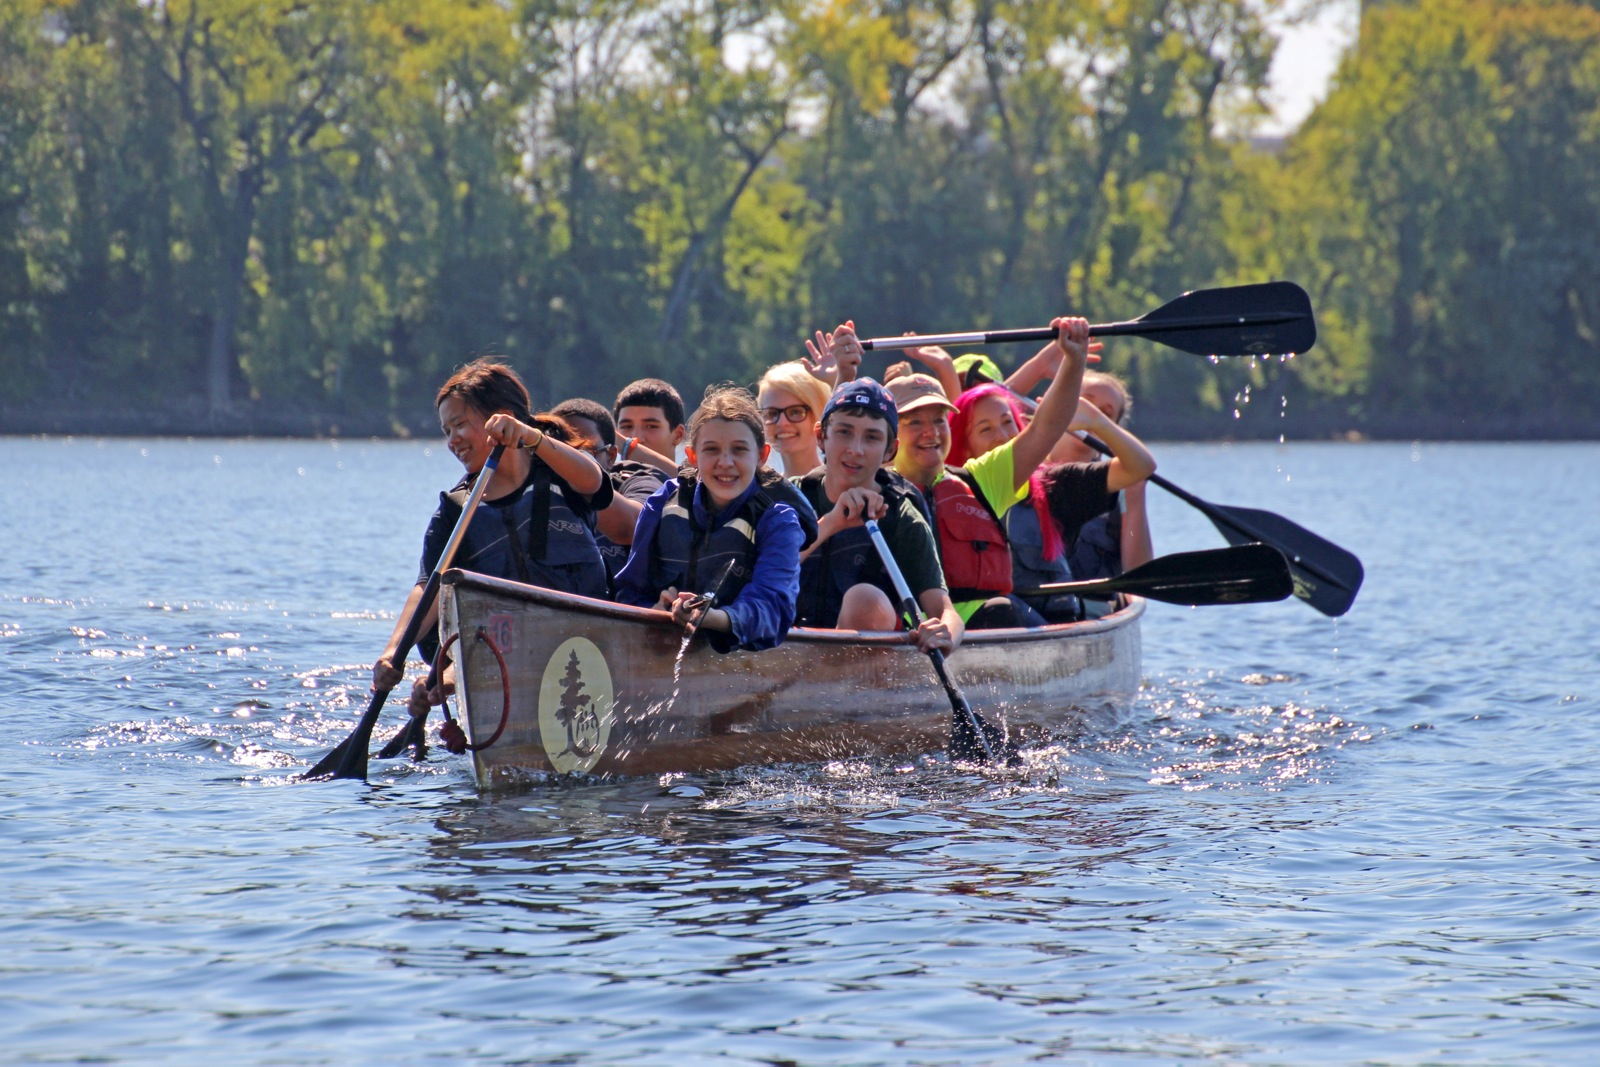 a group of students smile as they work together to paddle their canoe along a wide river